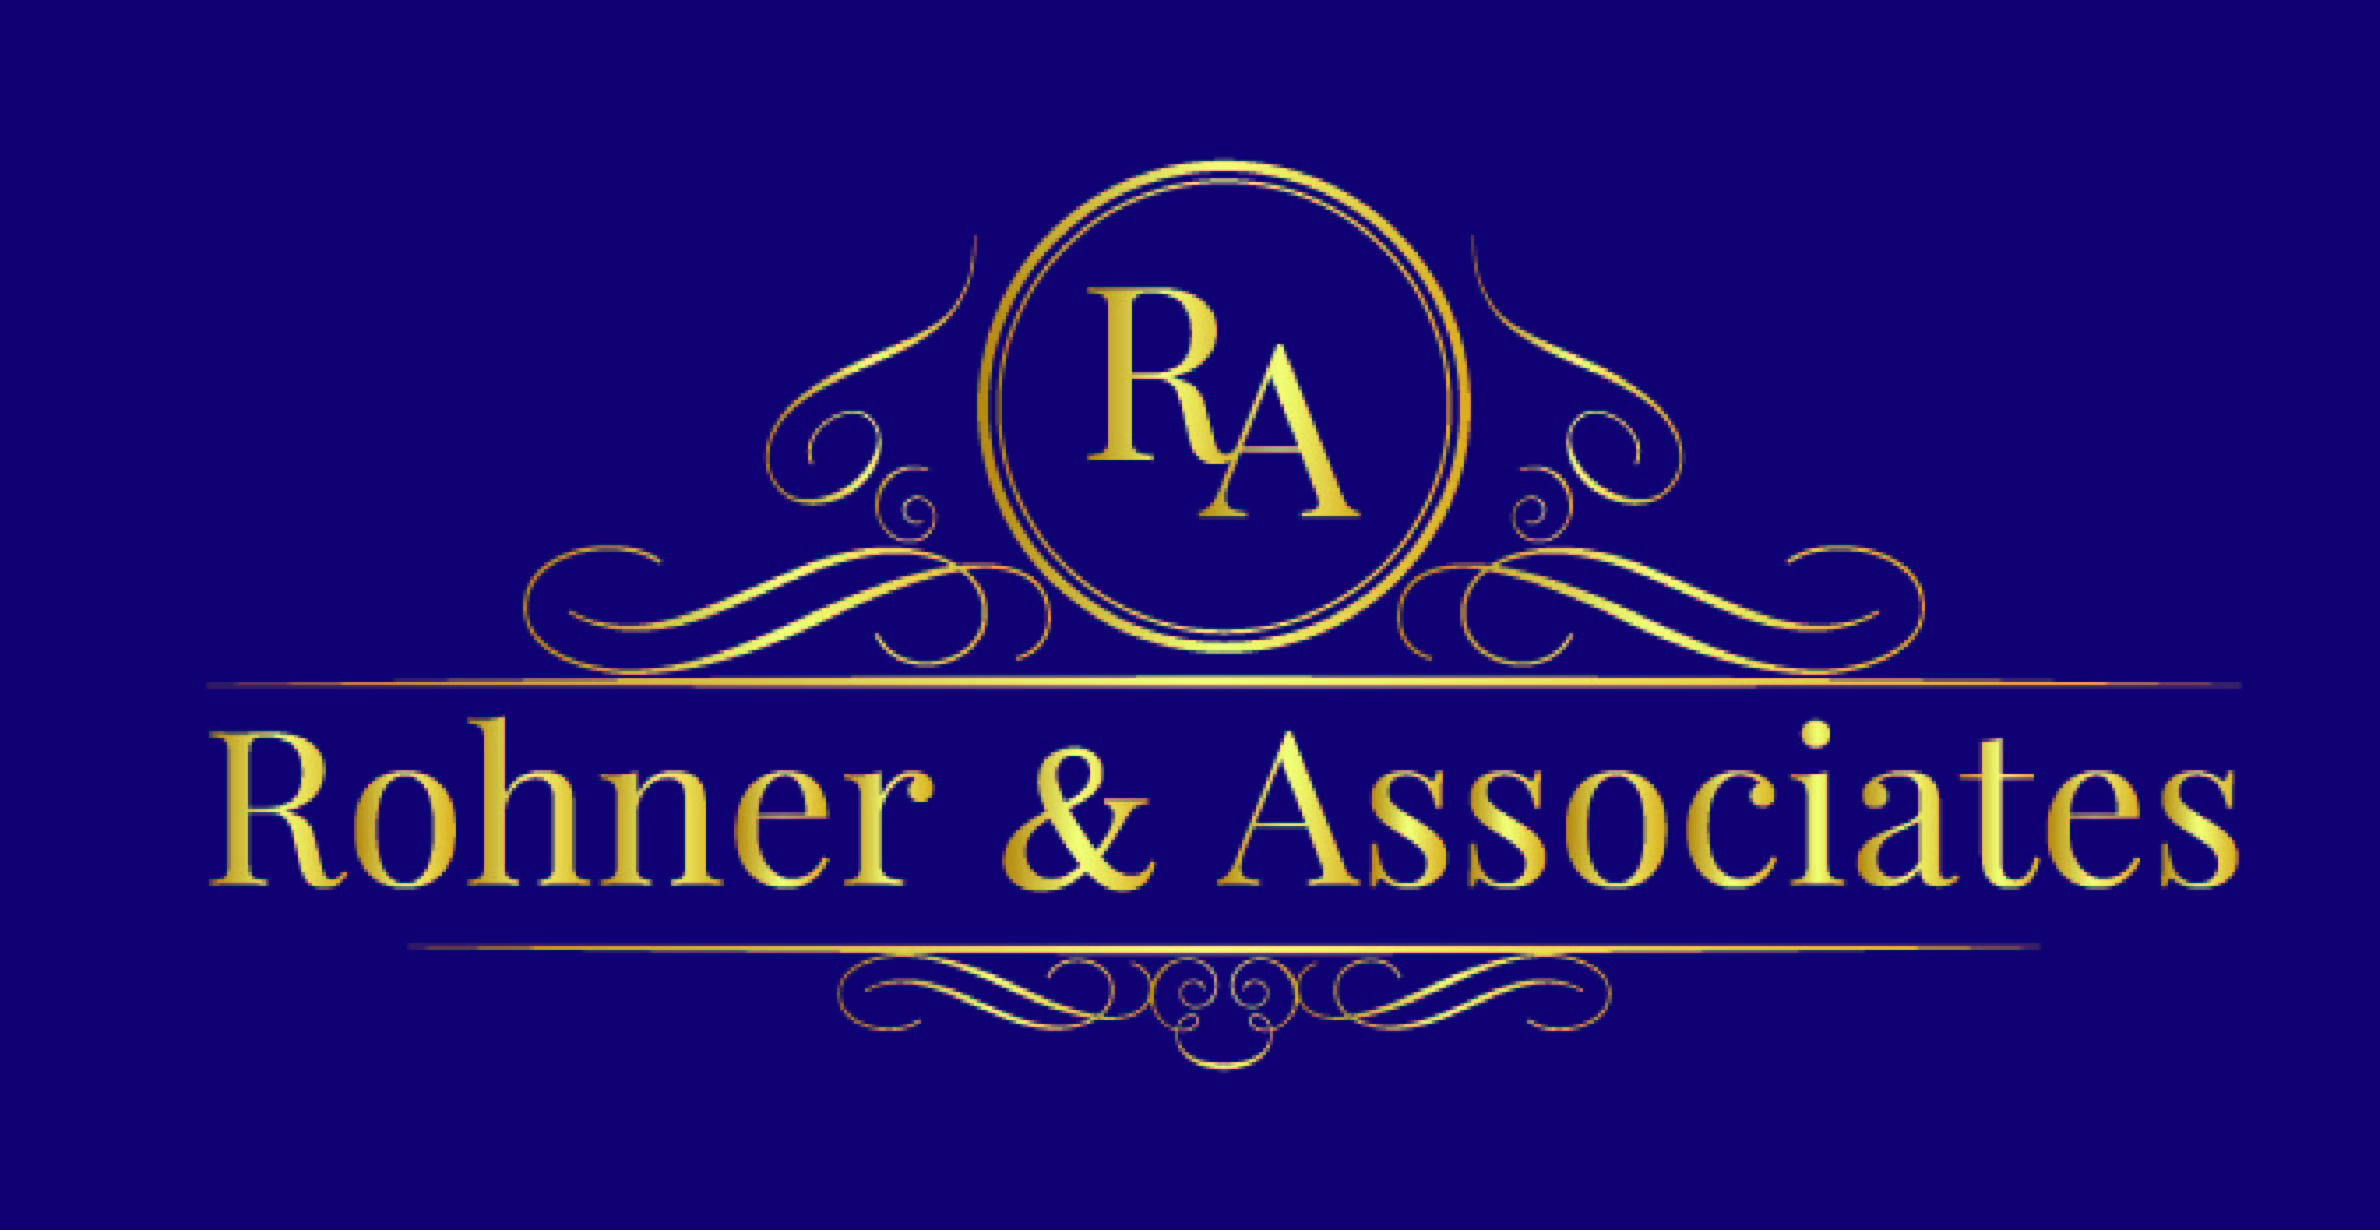 Crystal Lake, IL Accounting and Consulting Firm | Tax Services Page | Rohner & Associates Inc. a division of Amethyst Investment Partners